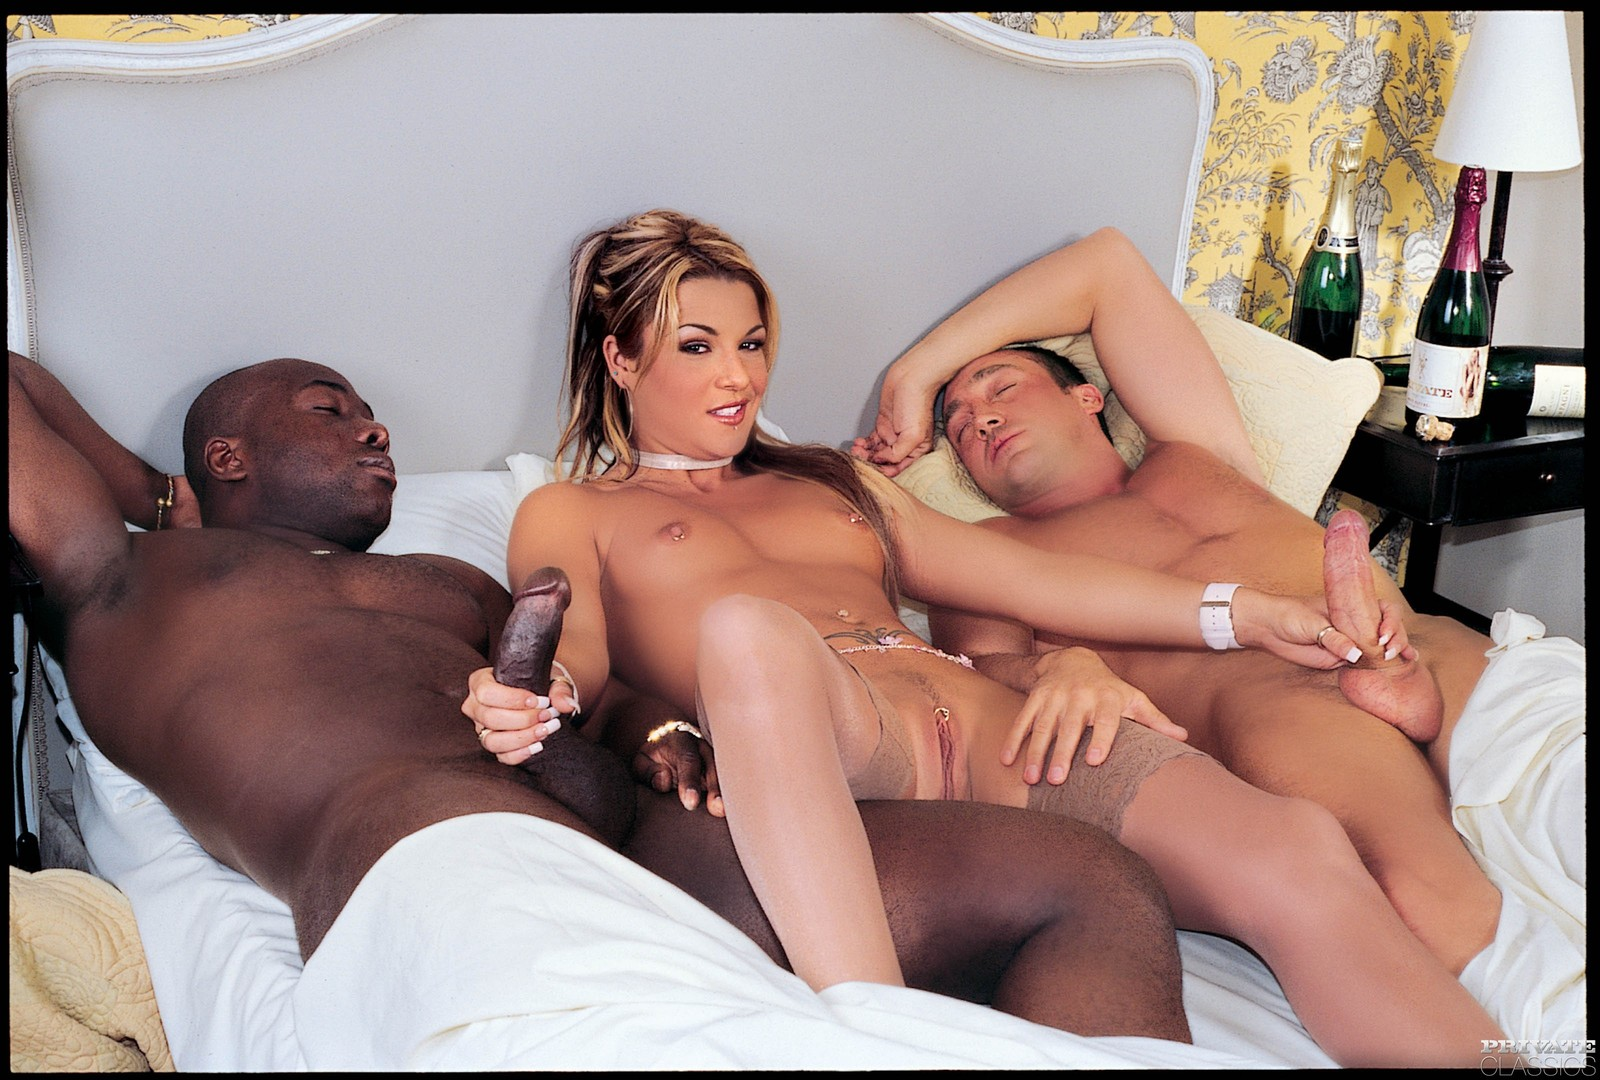 Shelby belle anal galery search